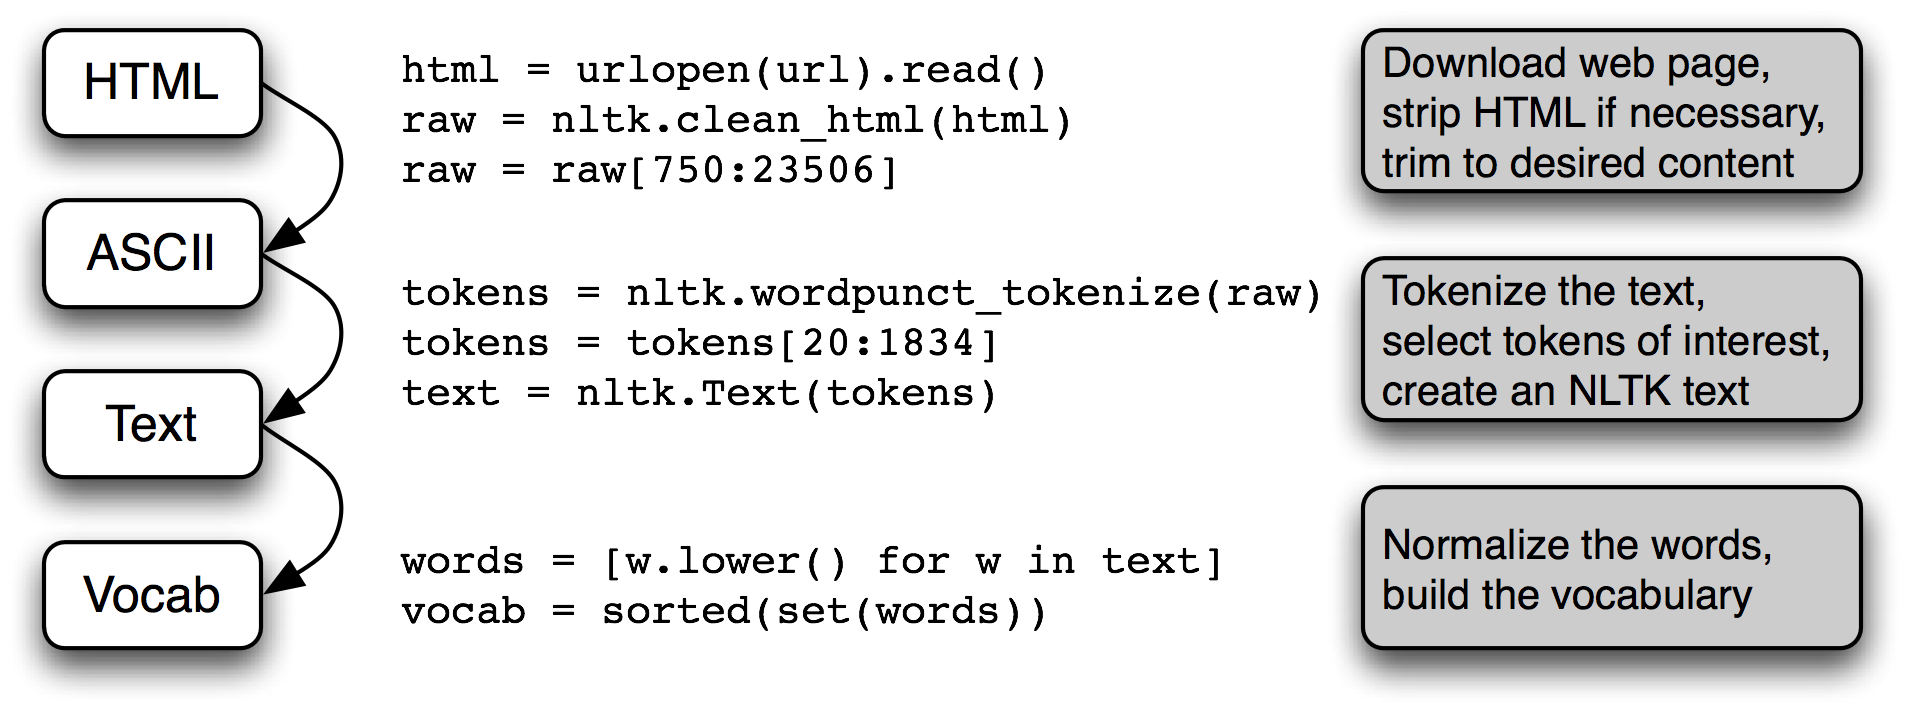 Natural Language Processing with Python and NLTK   Hael's Blog